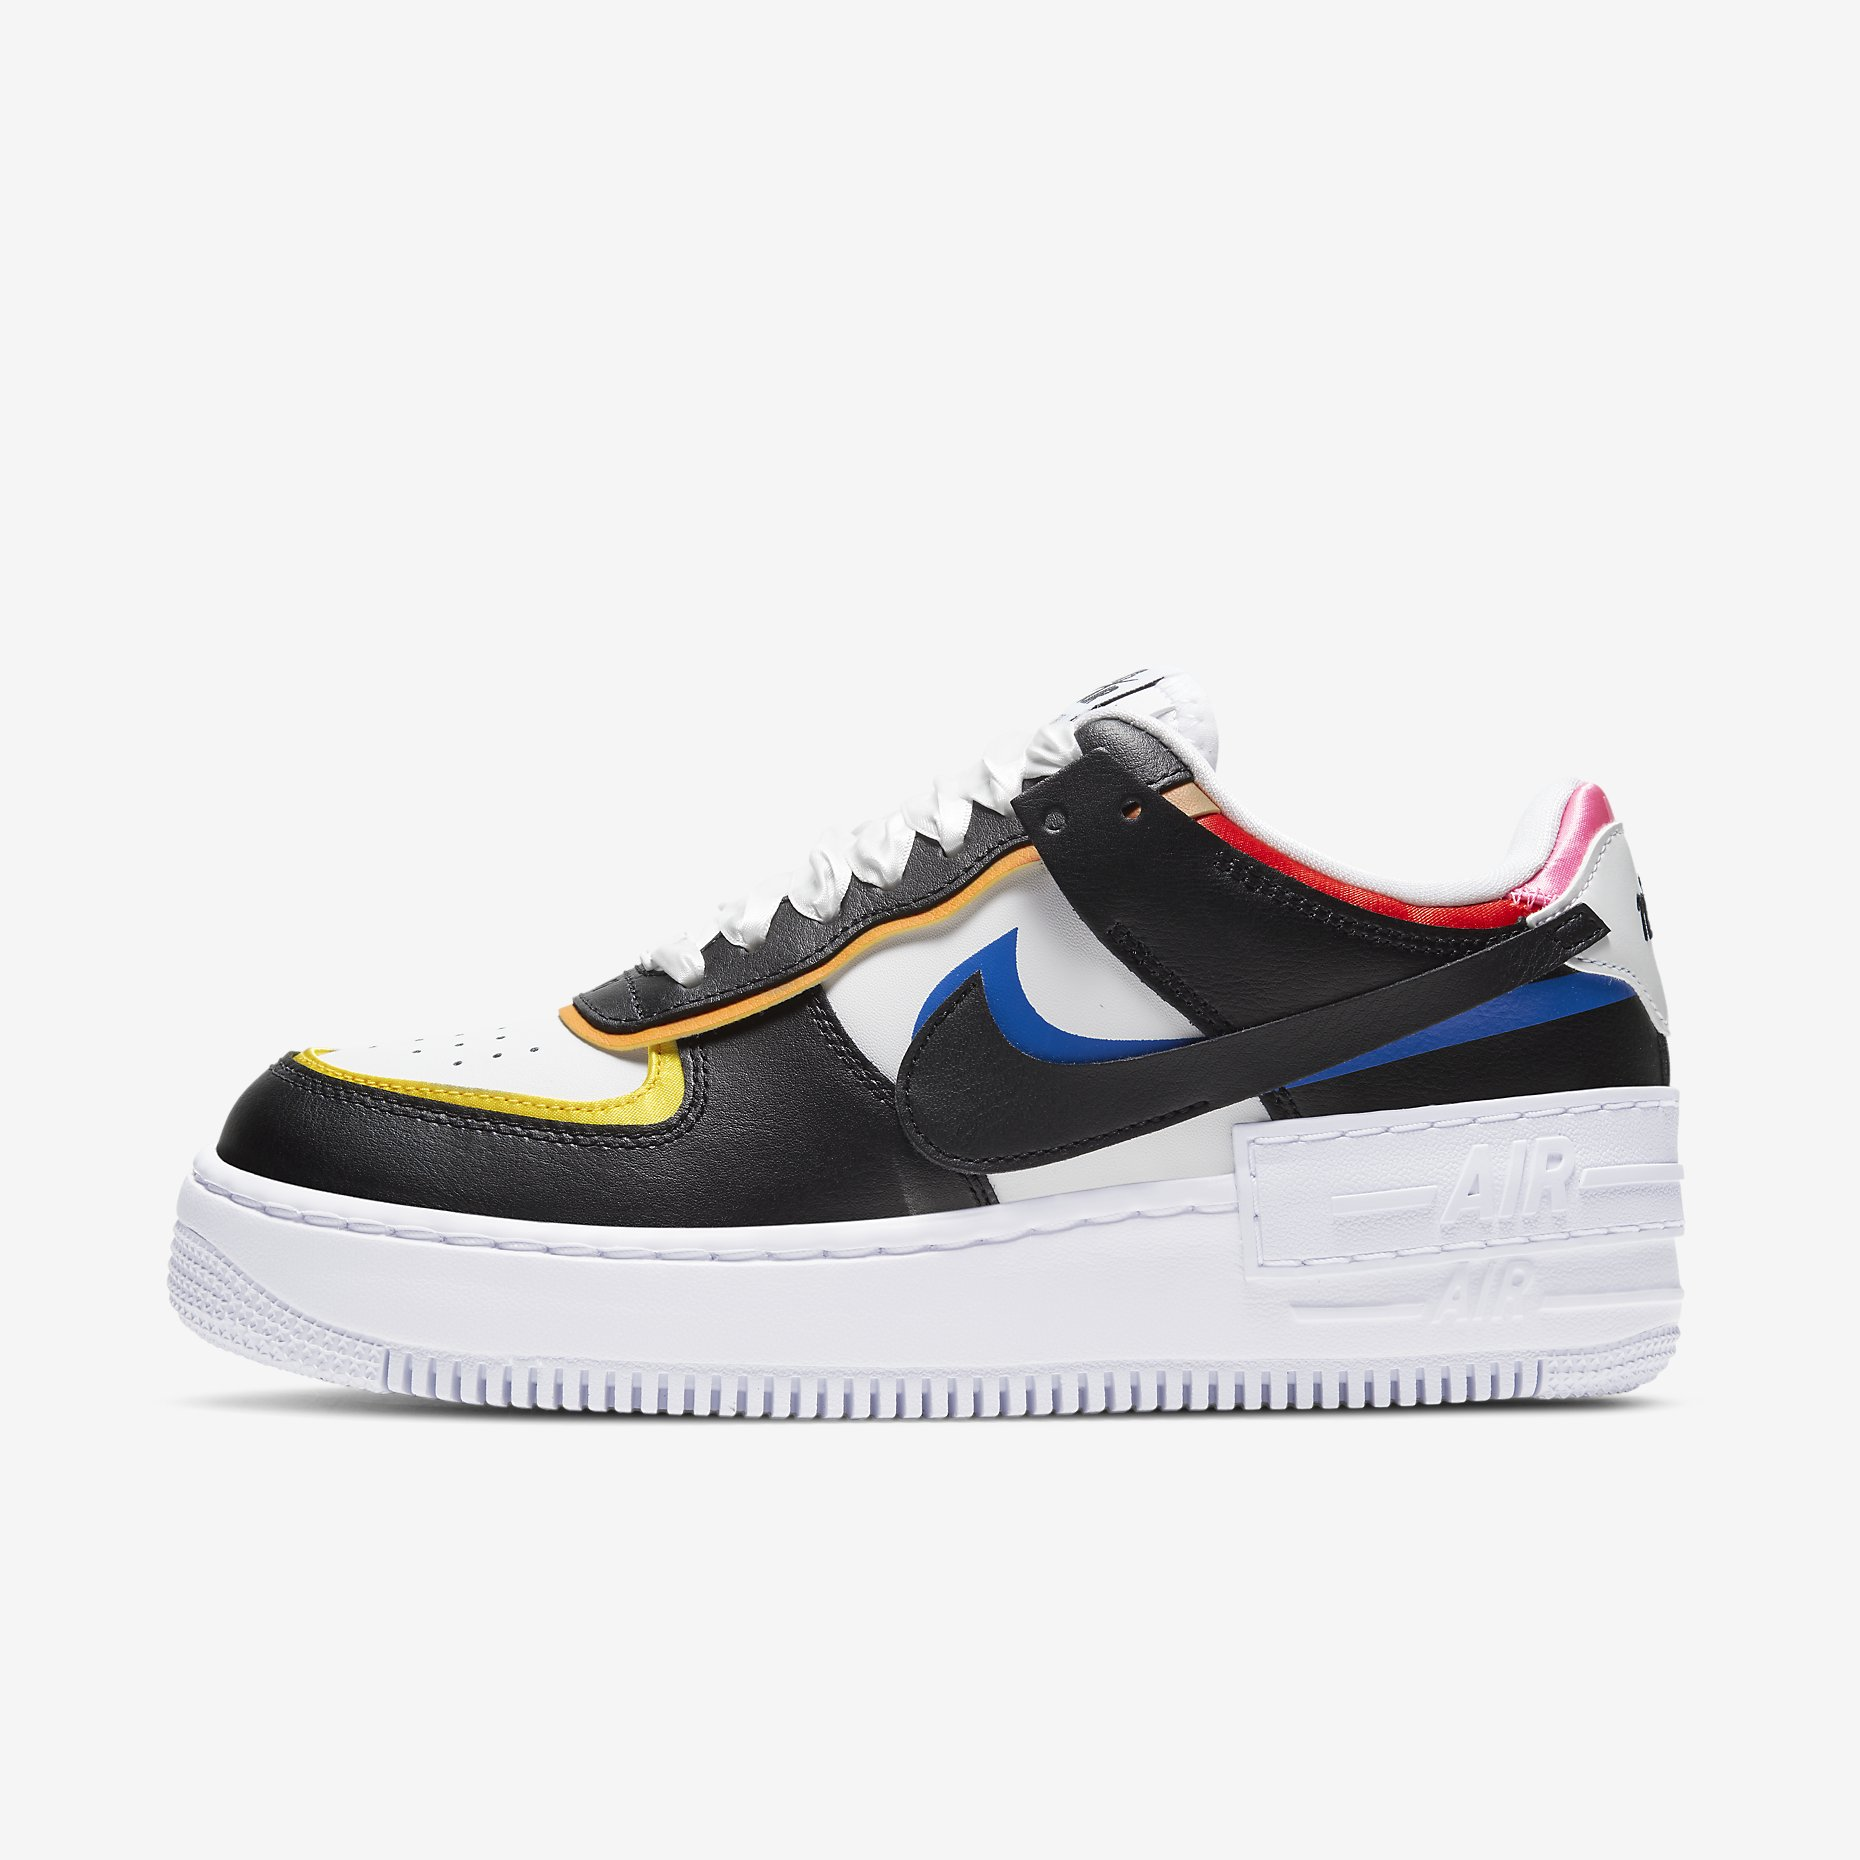 Moresneakers Nike air force 1 'shadow' trainers. more sneakers